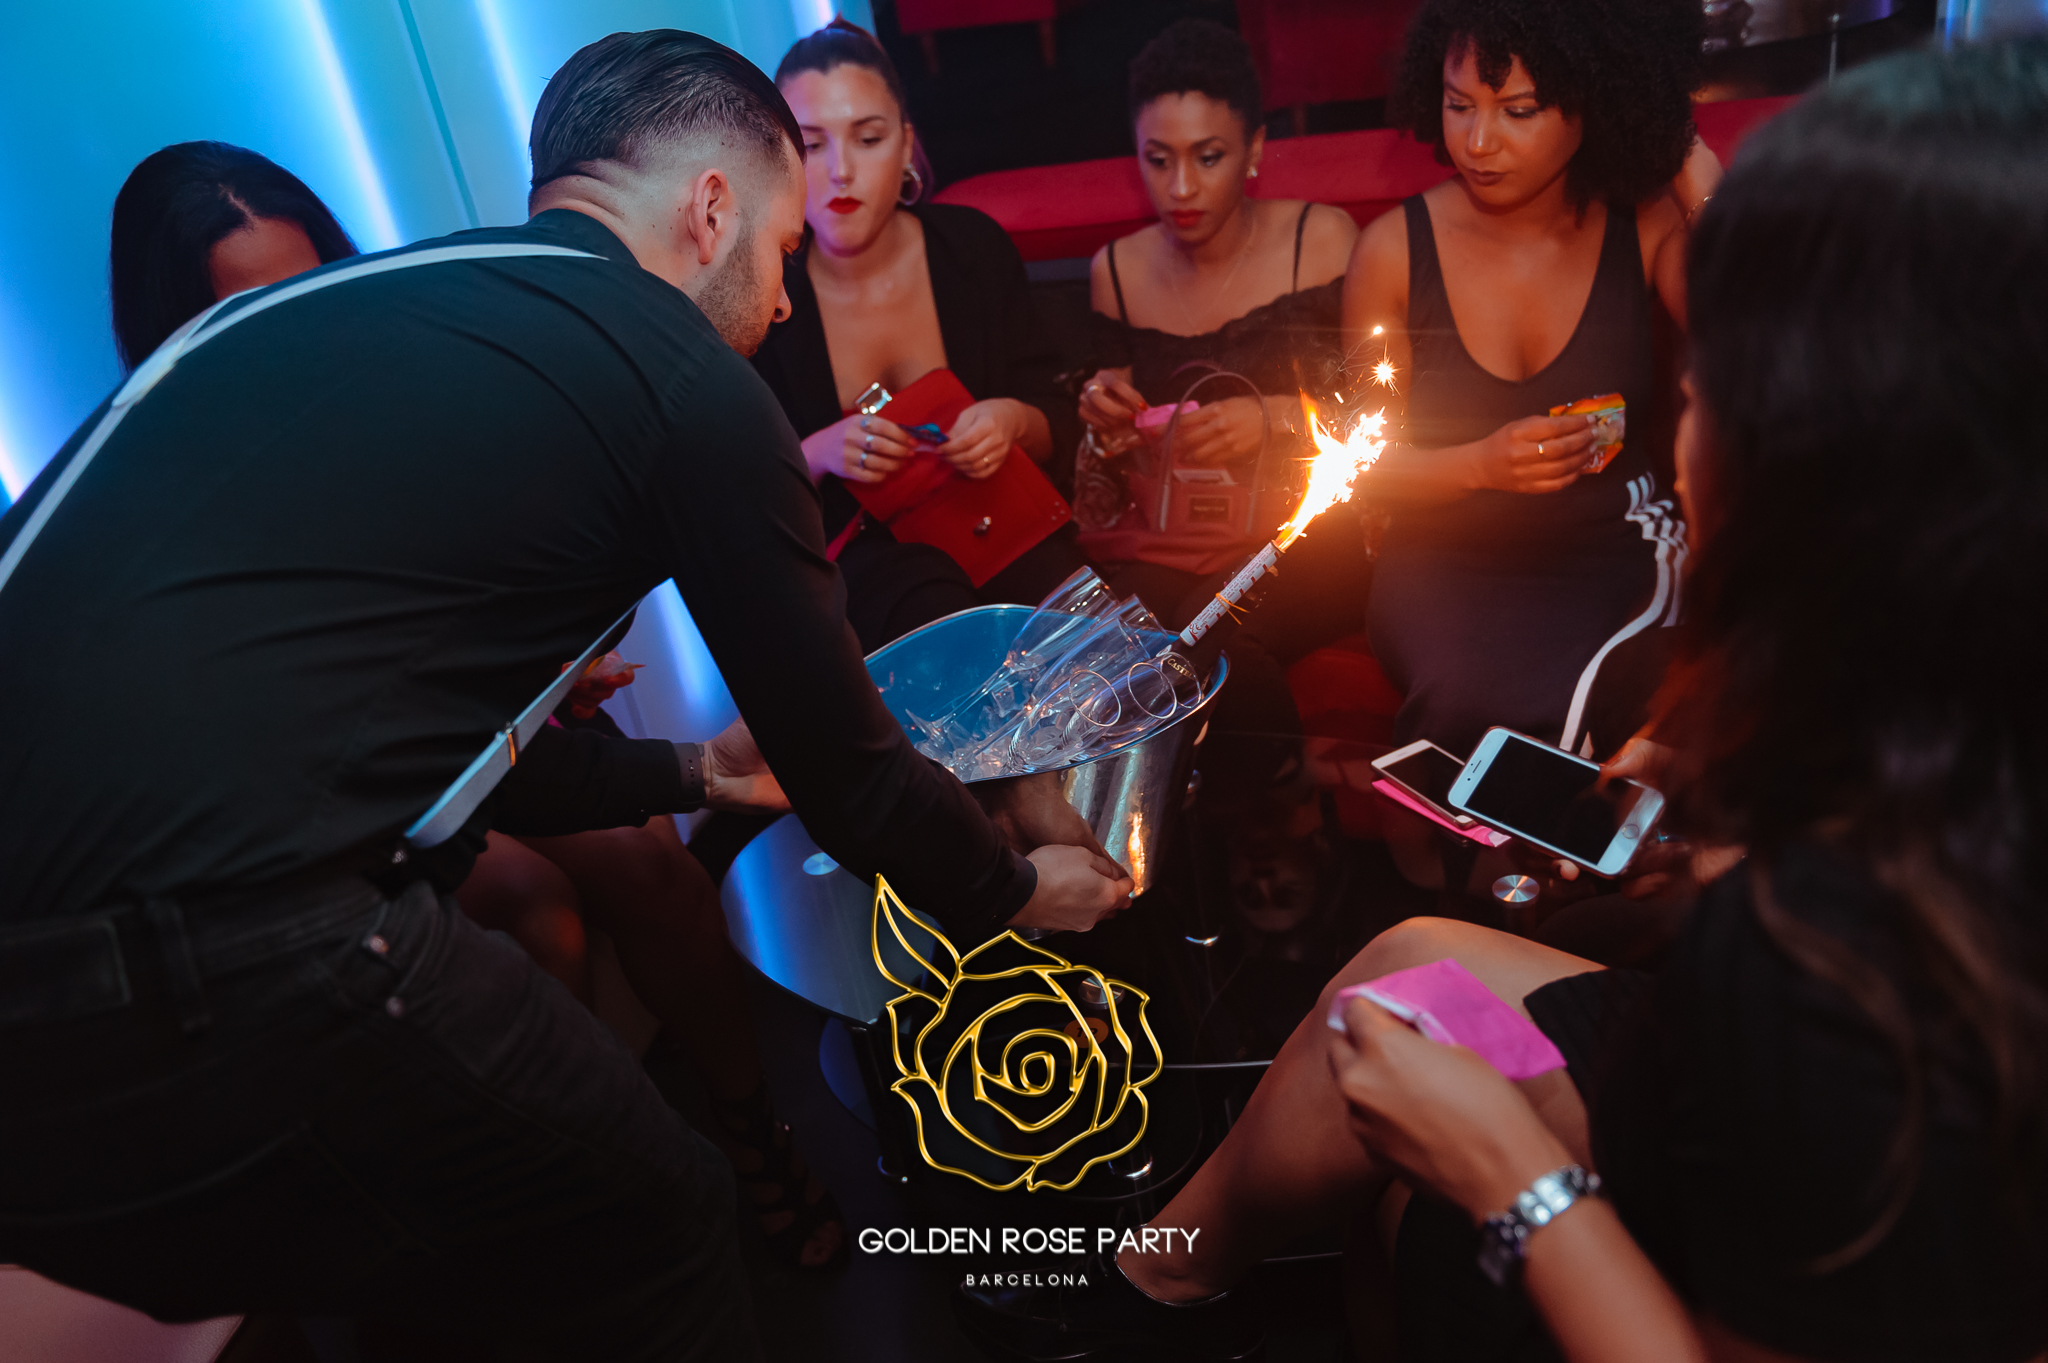 EVERY WEDNESDAY  - HIP HOP GOLDEN ROSE PARTY